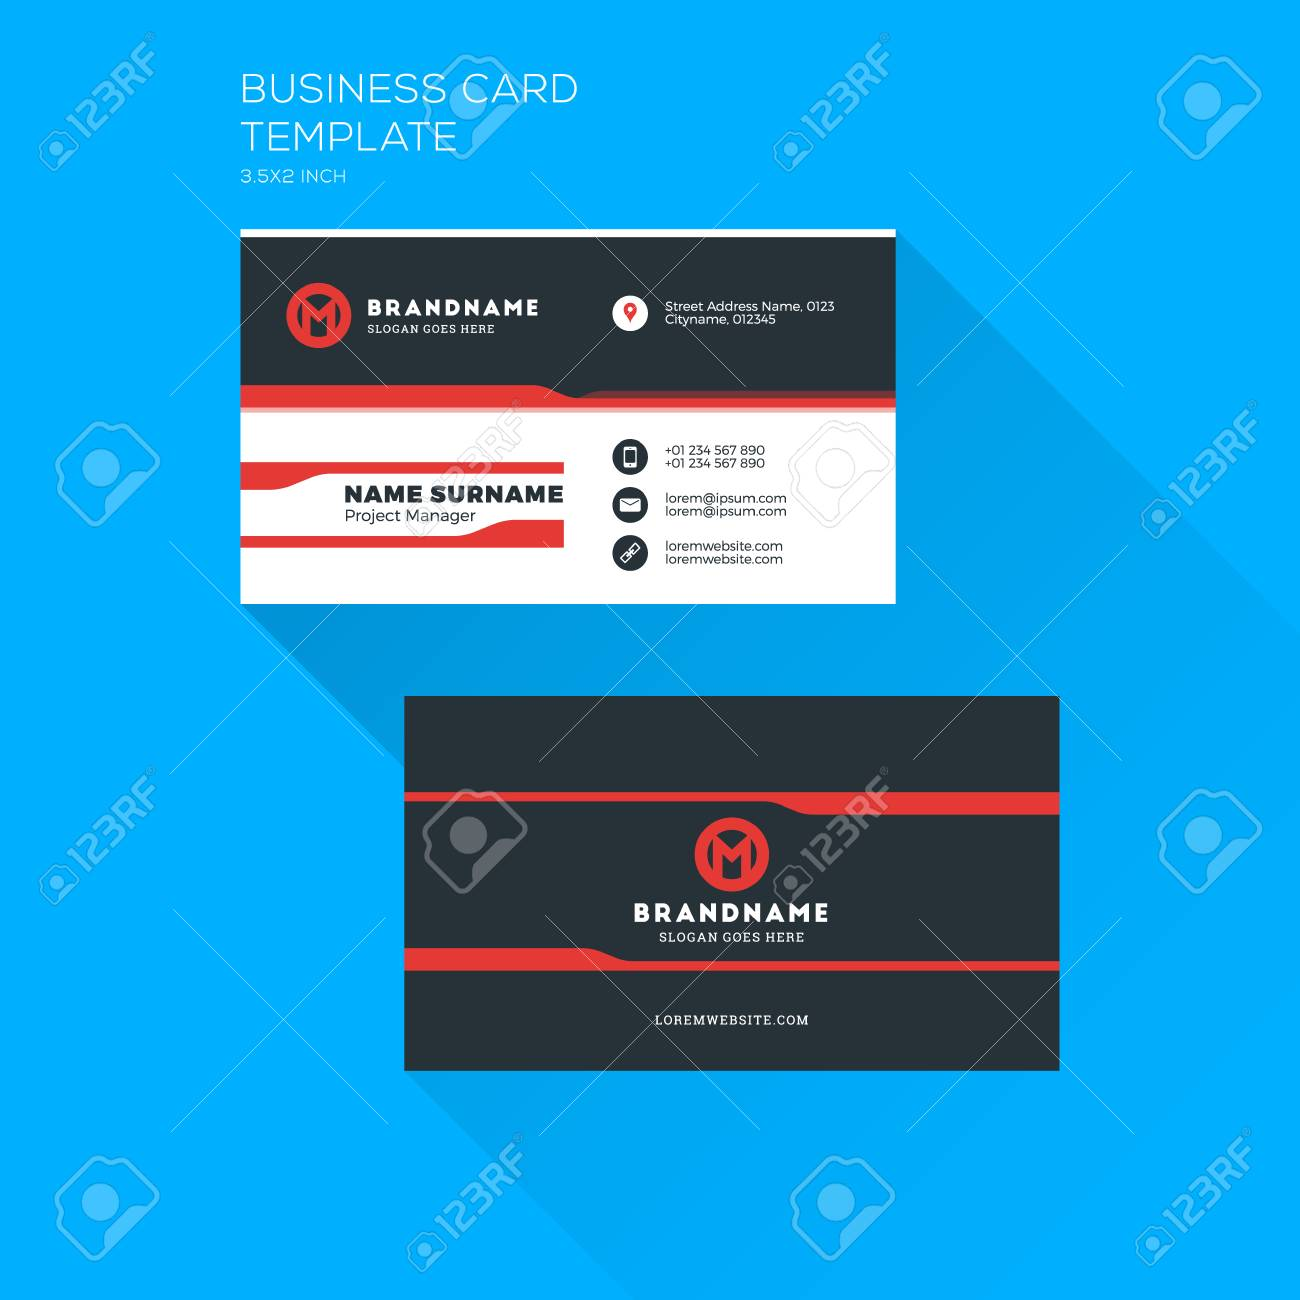 Corporate business card print template personal visiting card corporate business card print template personal visiting card with company logo clean flat stationery wajeb Gallery